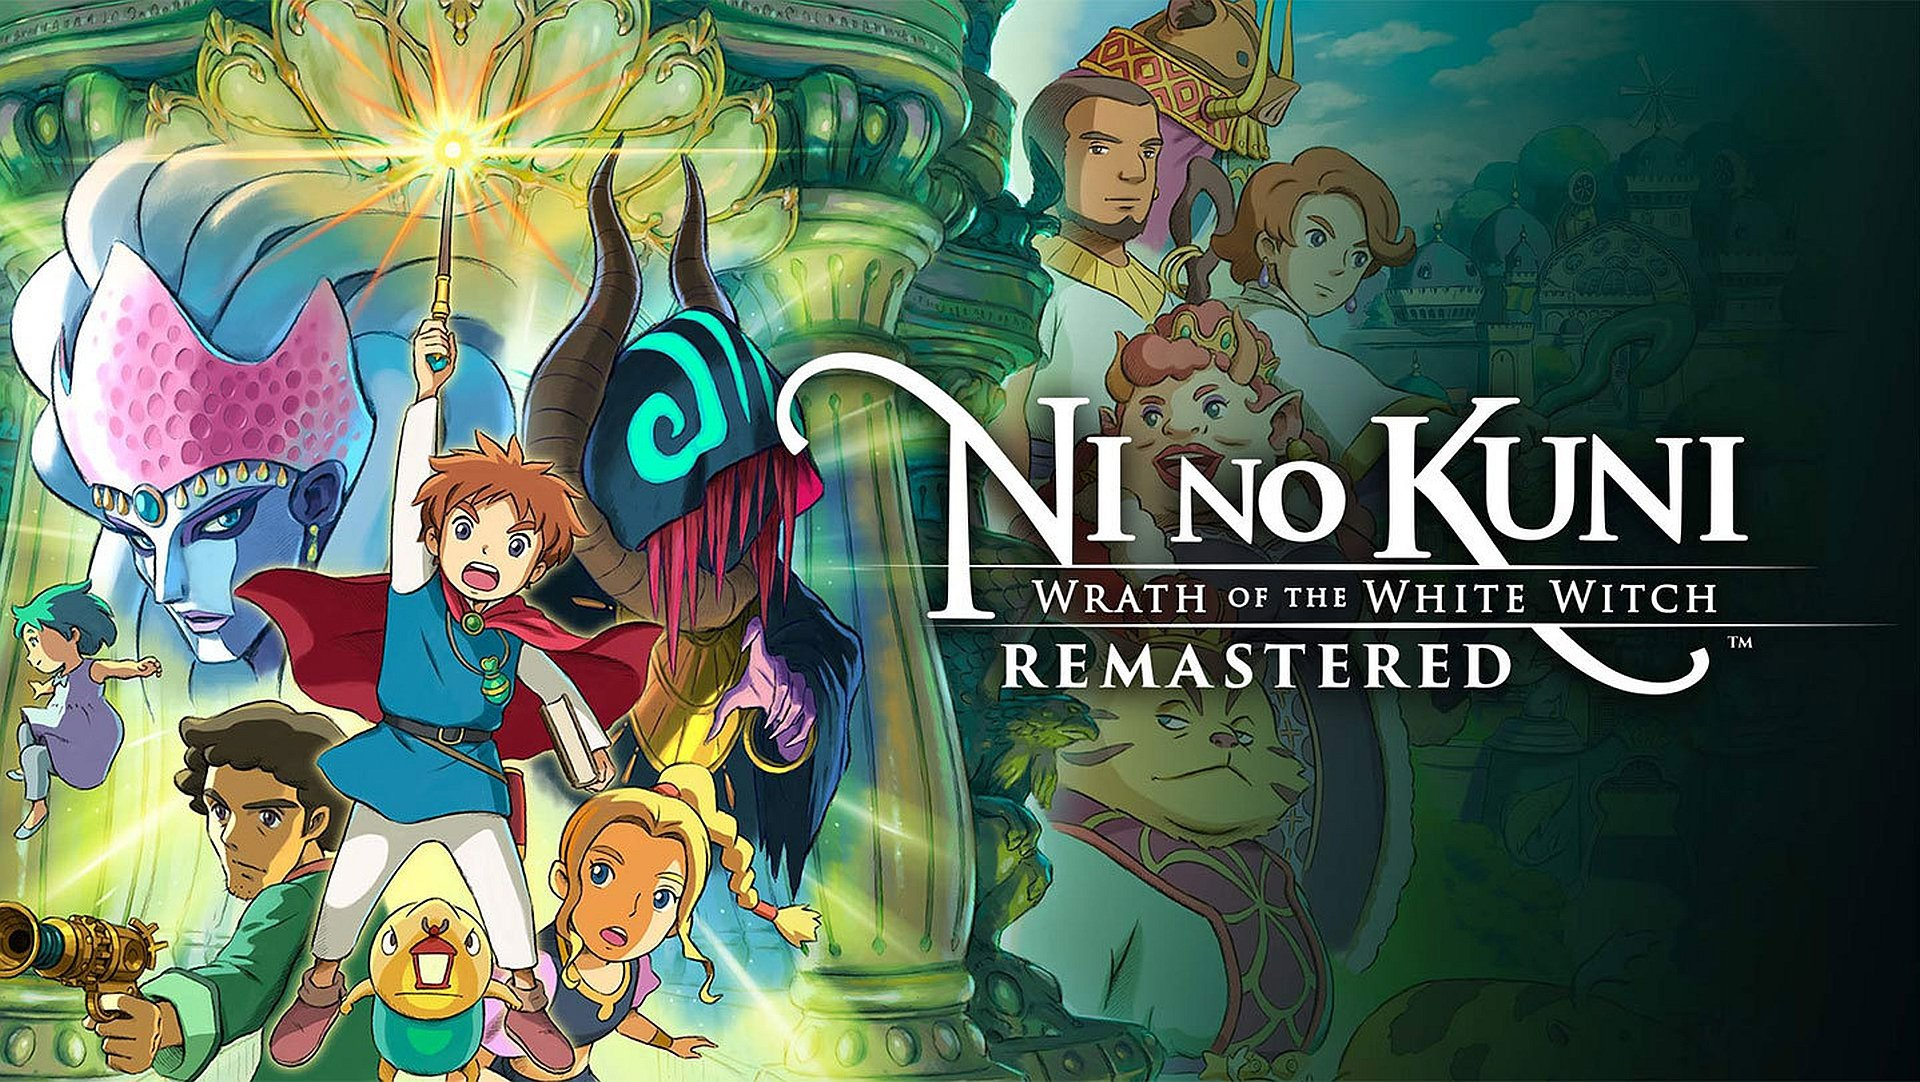 เกม Ni no Kuni: Wrath of the White Witch